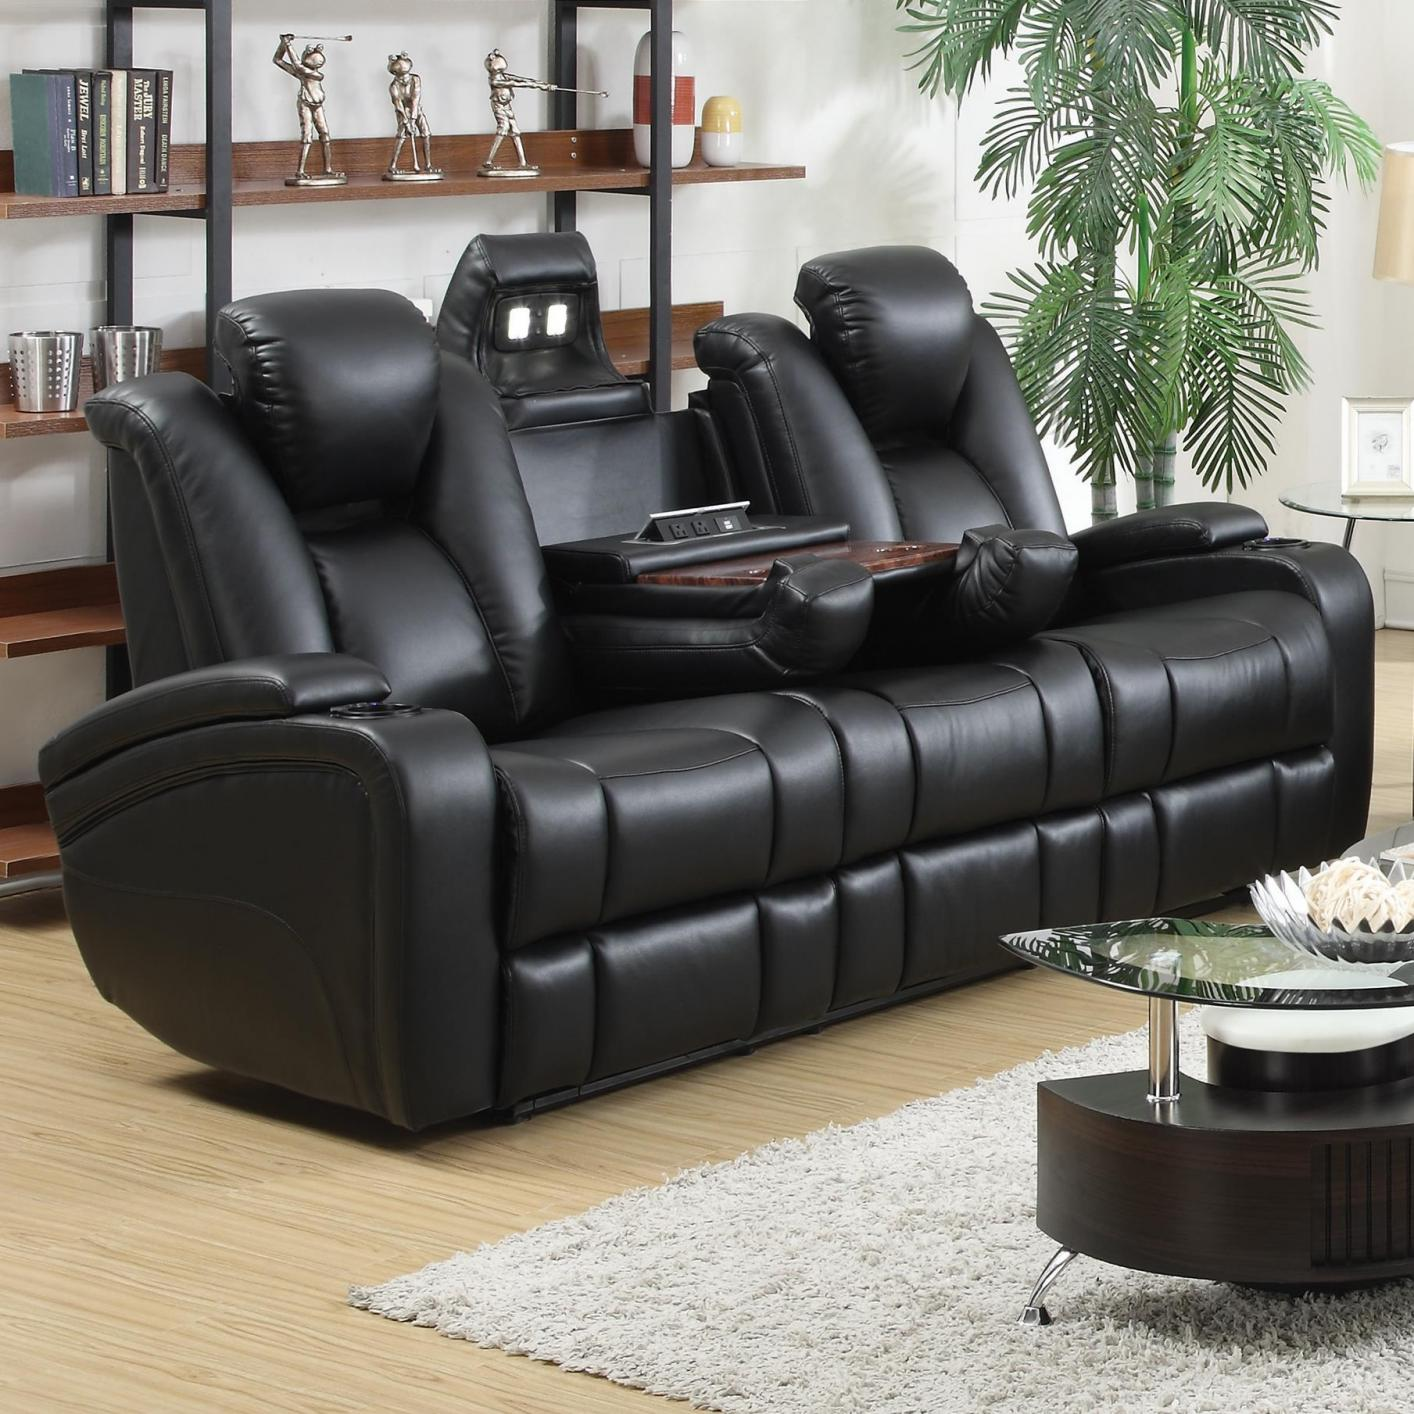 Cheap Recliner Sofas For Sale Black Leather Reclining: Black Leather Power Reclining Sofa